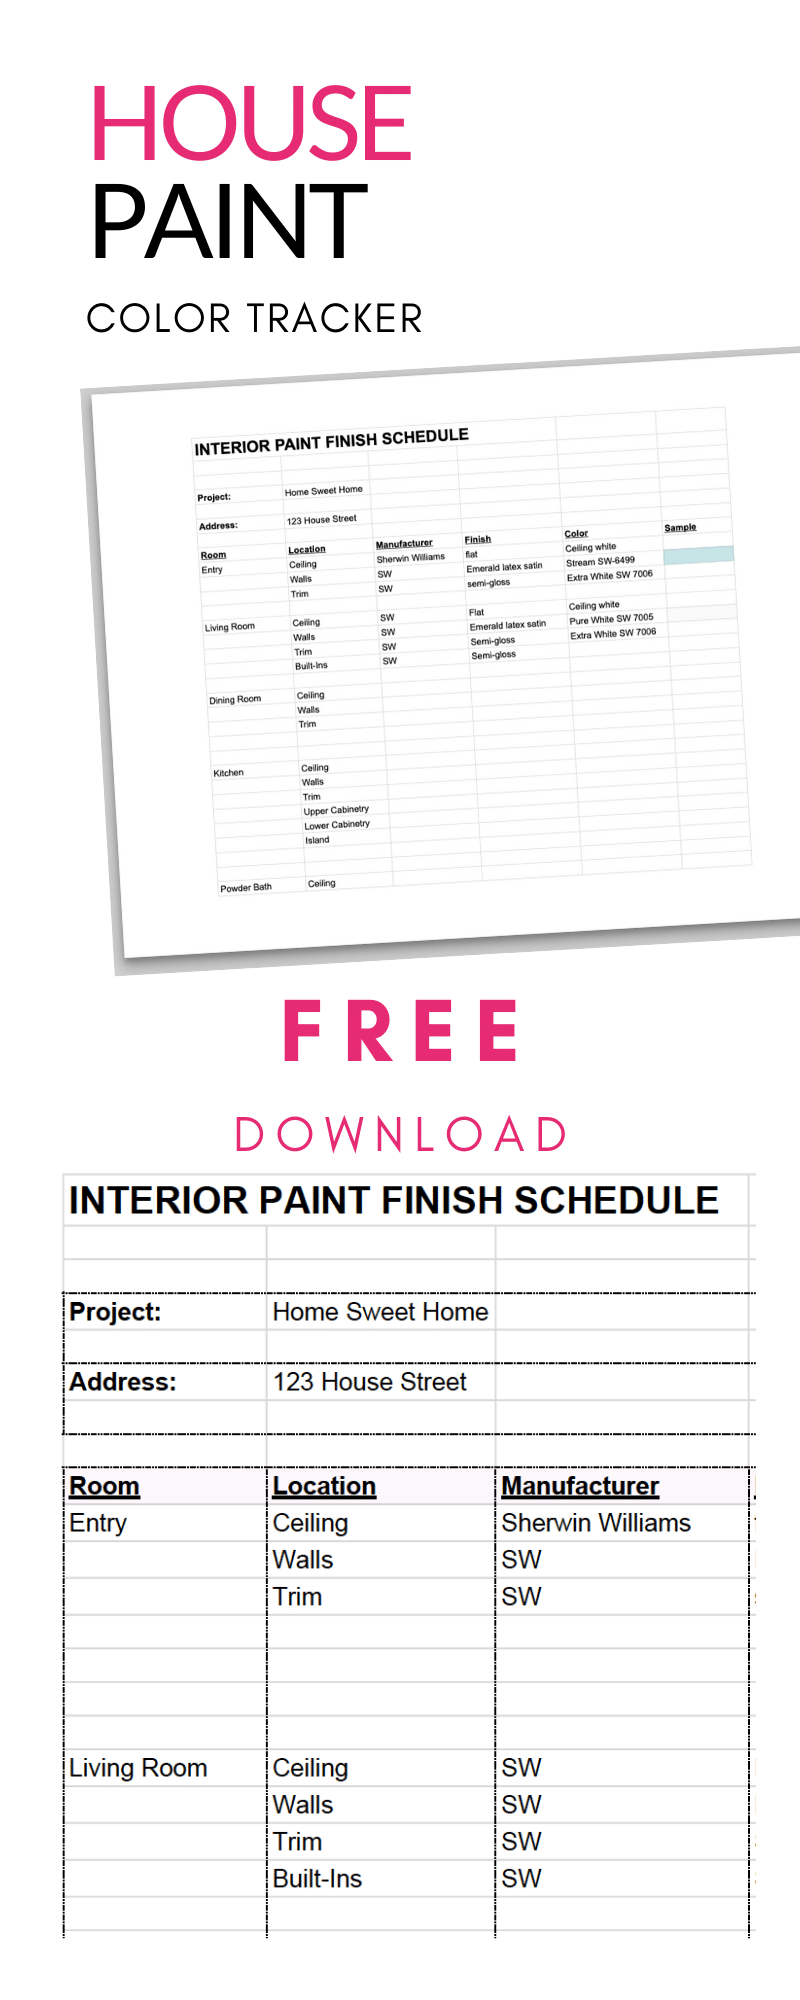 Whole Home Paint Planner and Tracker Worksheet + Paint Finish Schedule